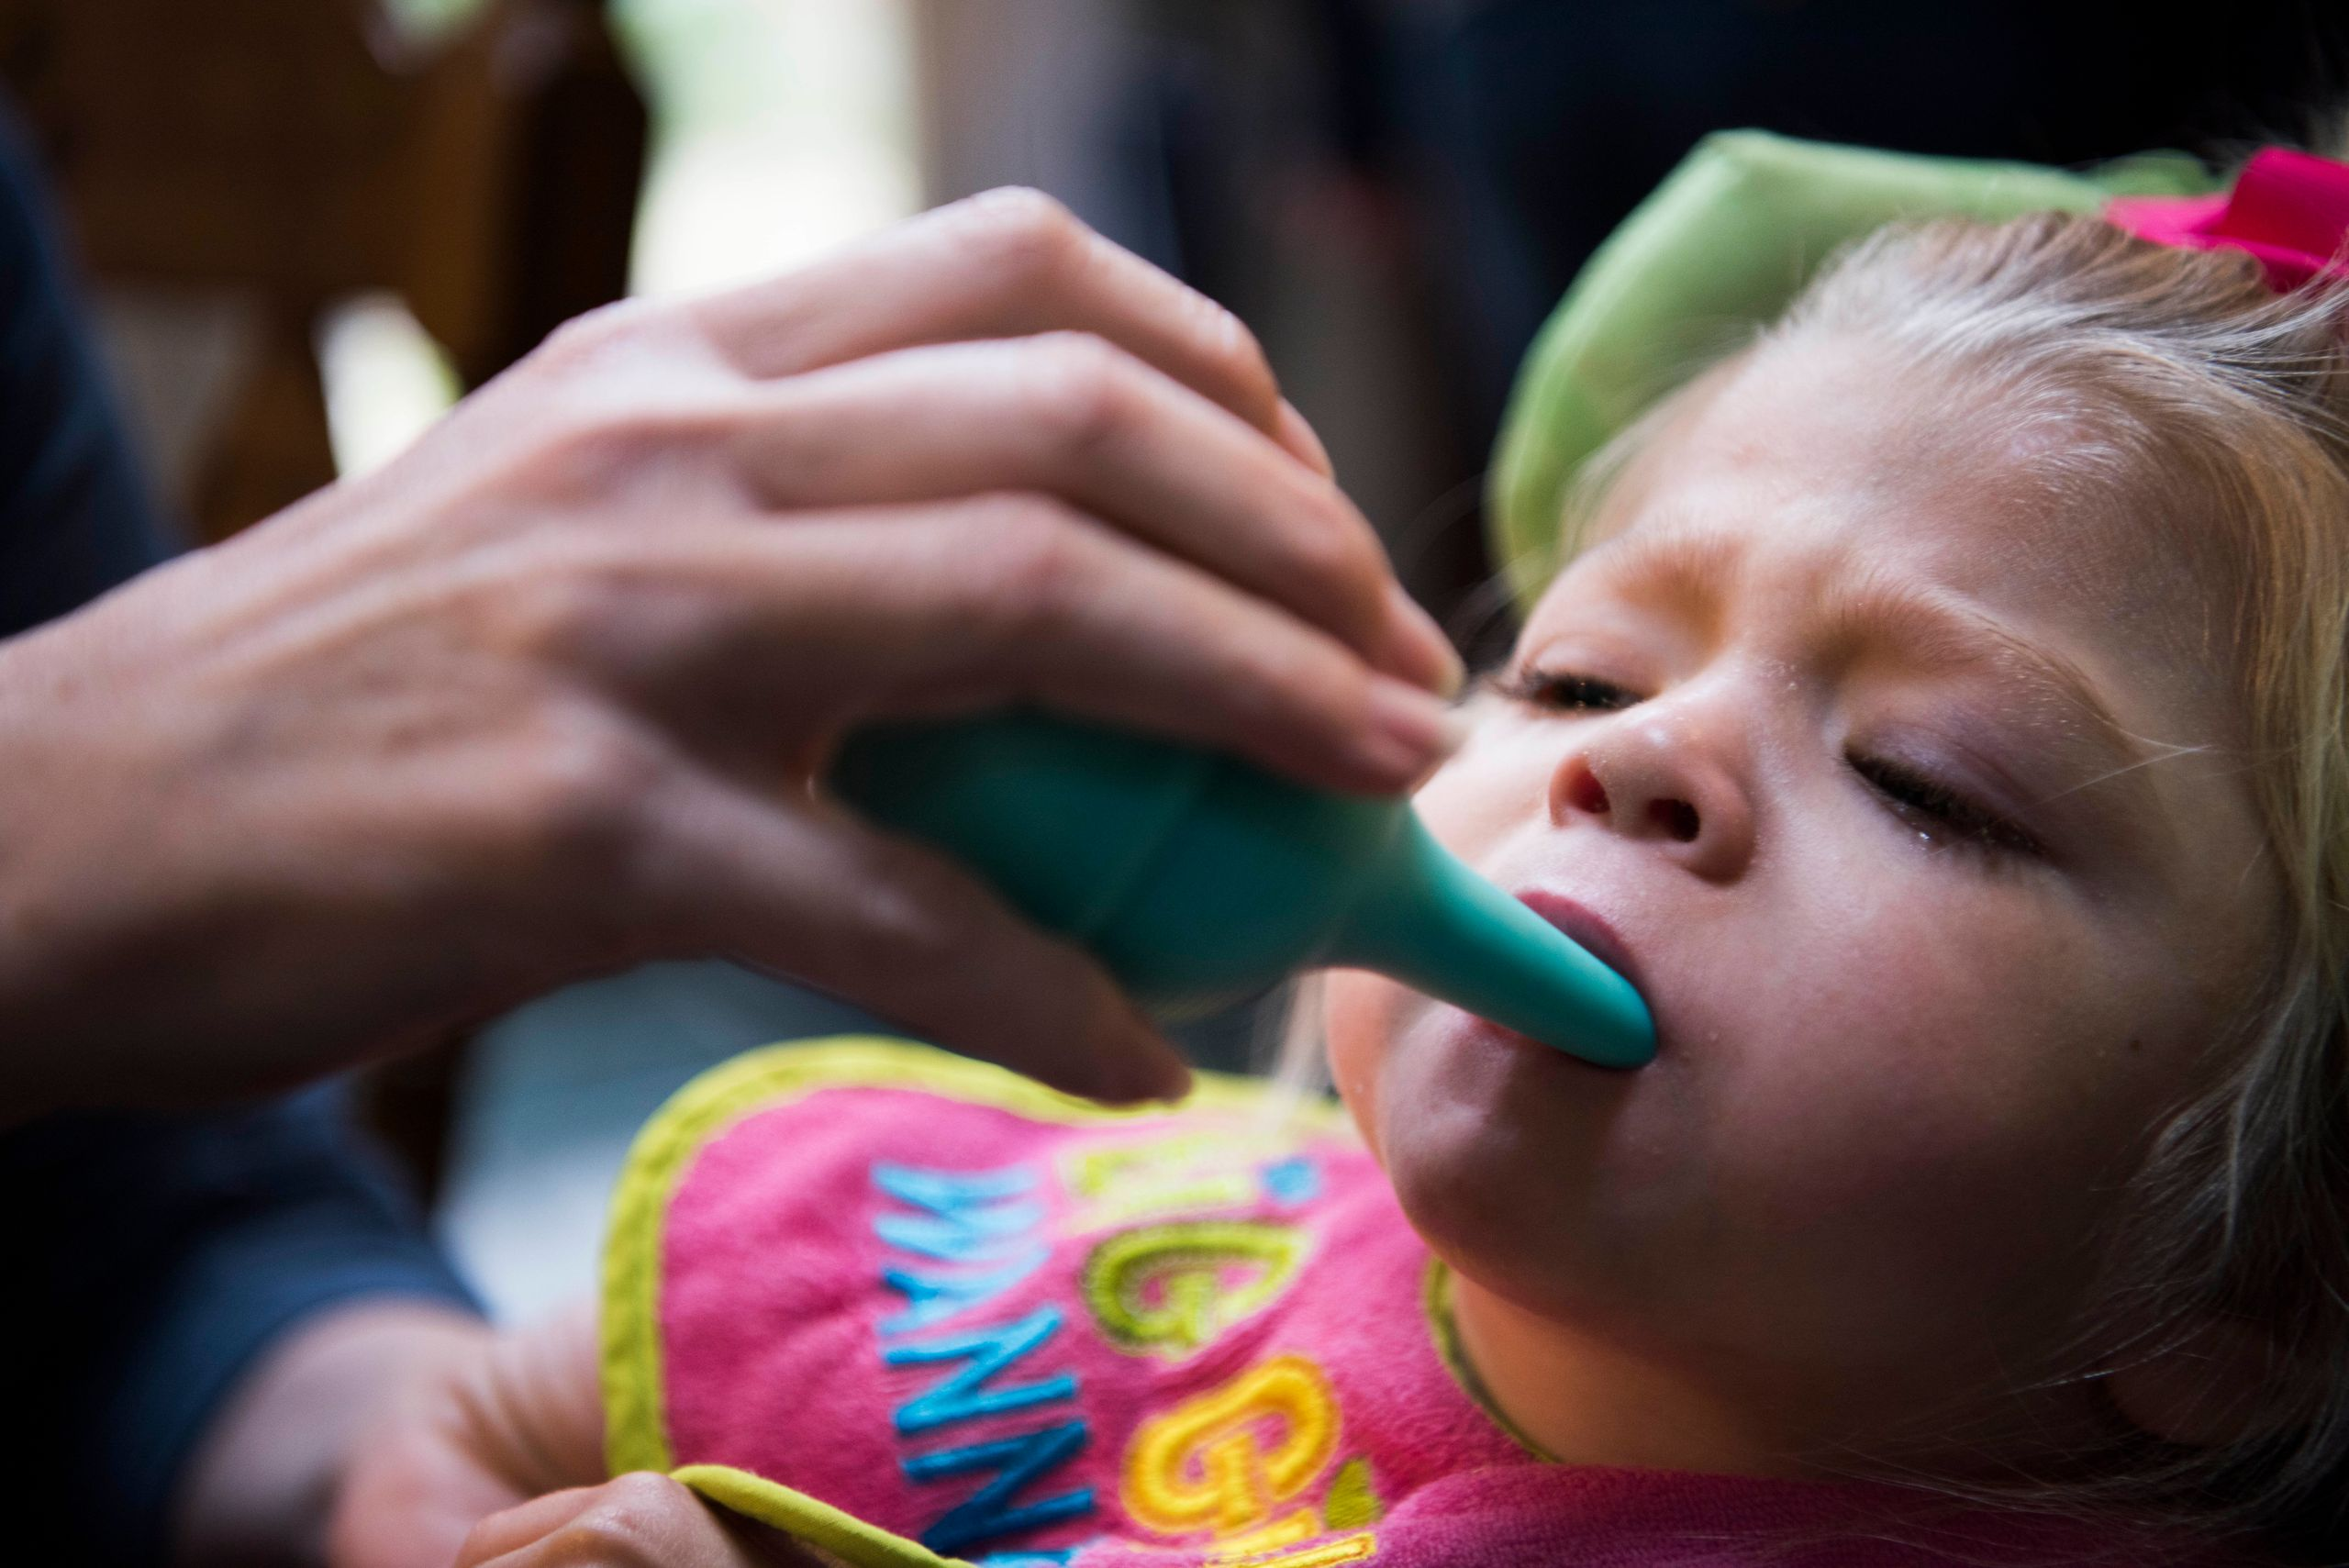 As Willow chokes on her own saliva, Glenda uses a suction tool to clear the girl's airway so she can breathe.